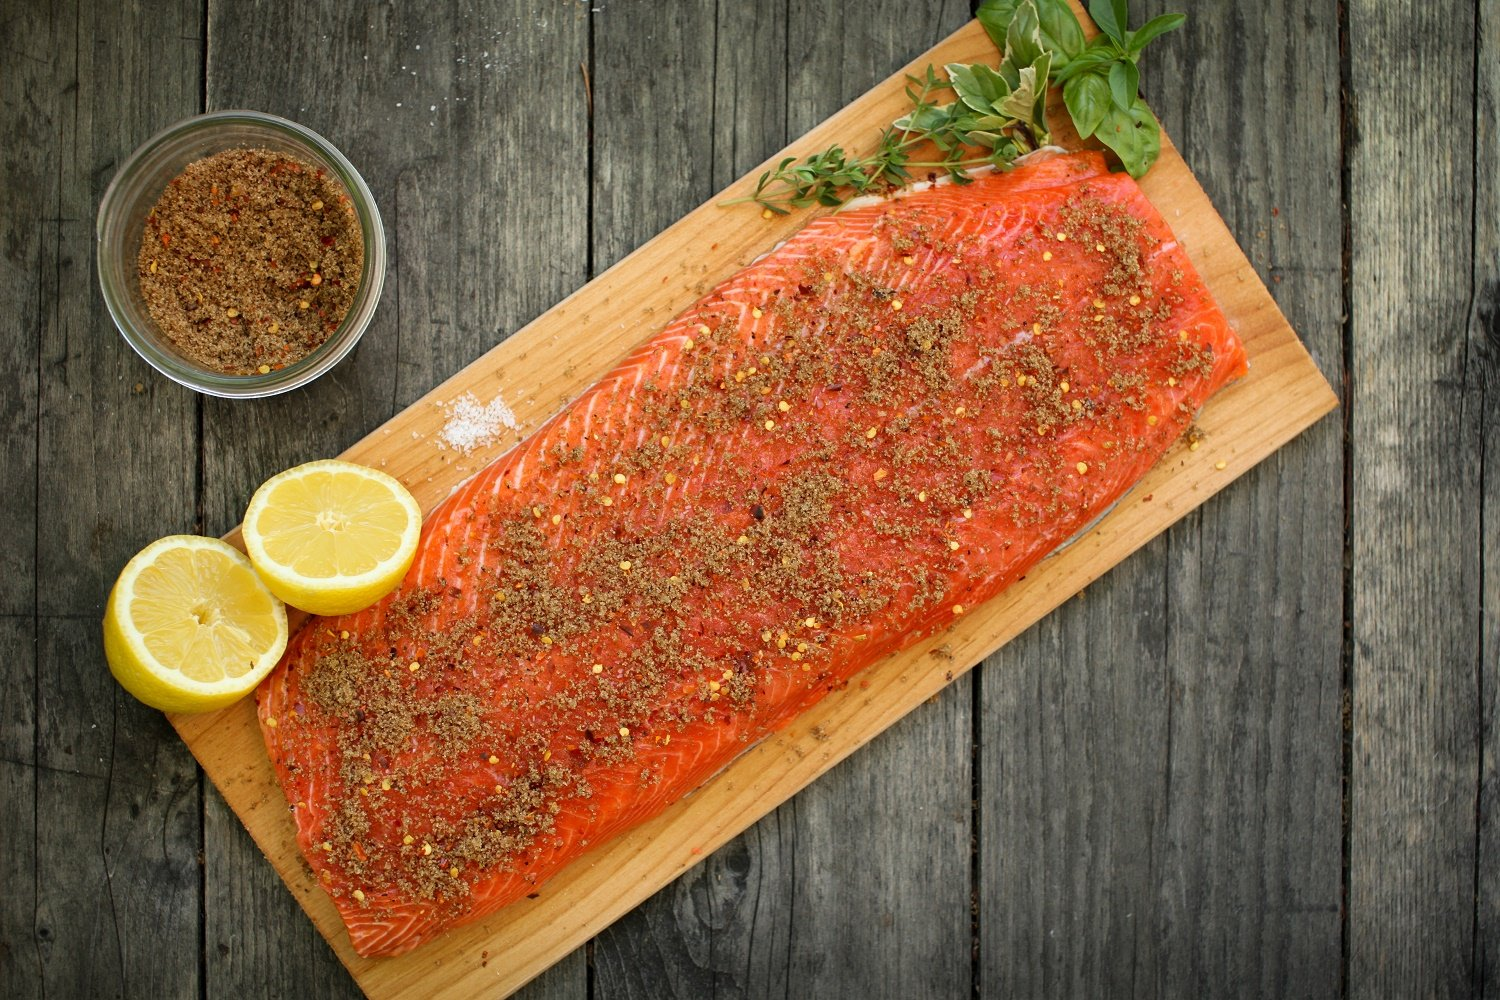 XL Large Cedar Grilling Planks (20 Pack) - 7x15'' - Fits Full Filet of Salmon + Free Recipe eBook by Wood Fire Grilling Co. (Image #2)